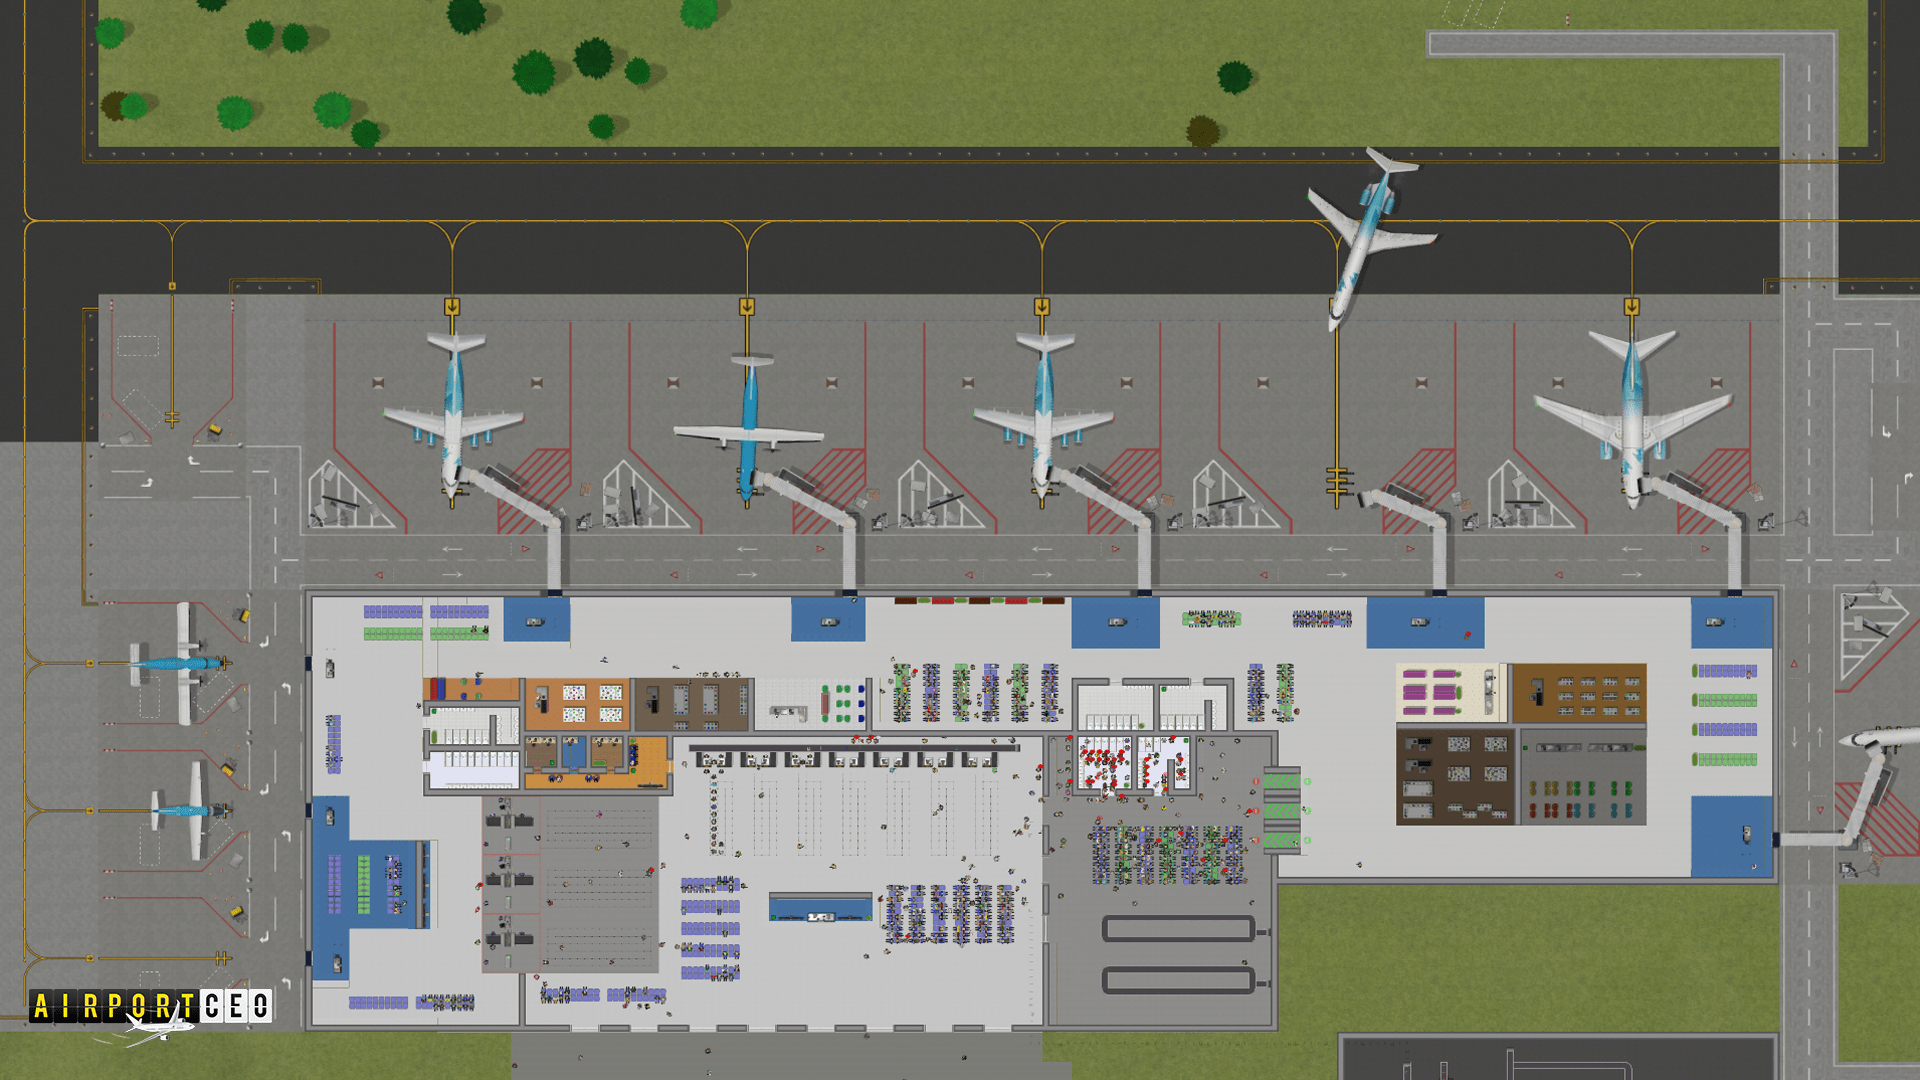 DevLog 66 New Airlines New Screenshots  New Performance news  Airport CEO  Mod DB